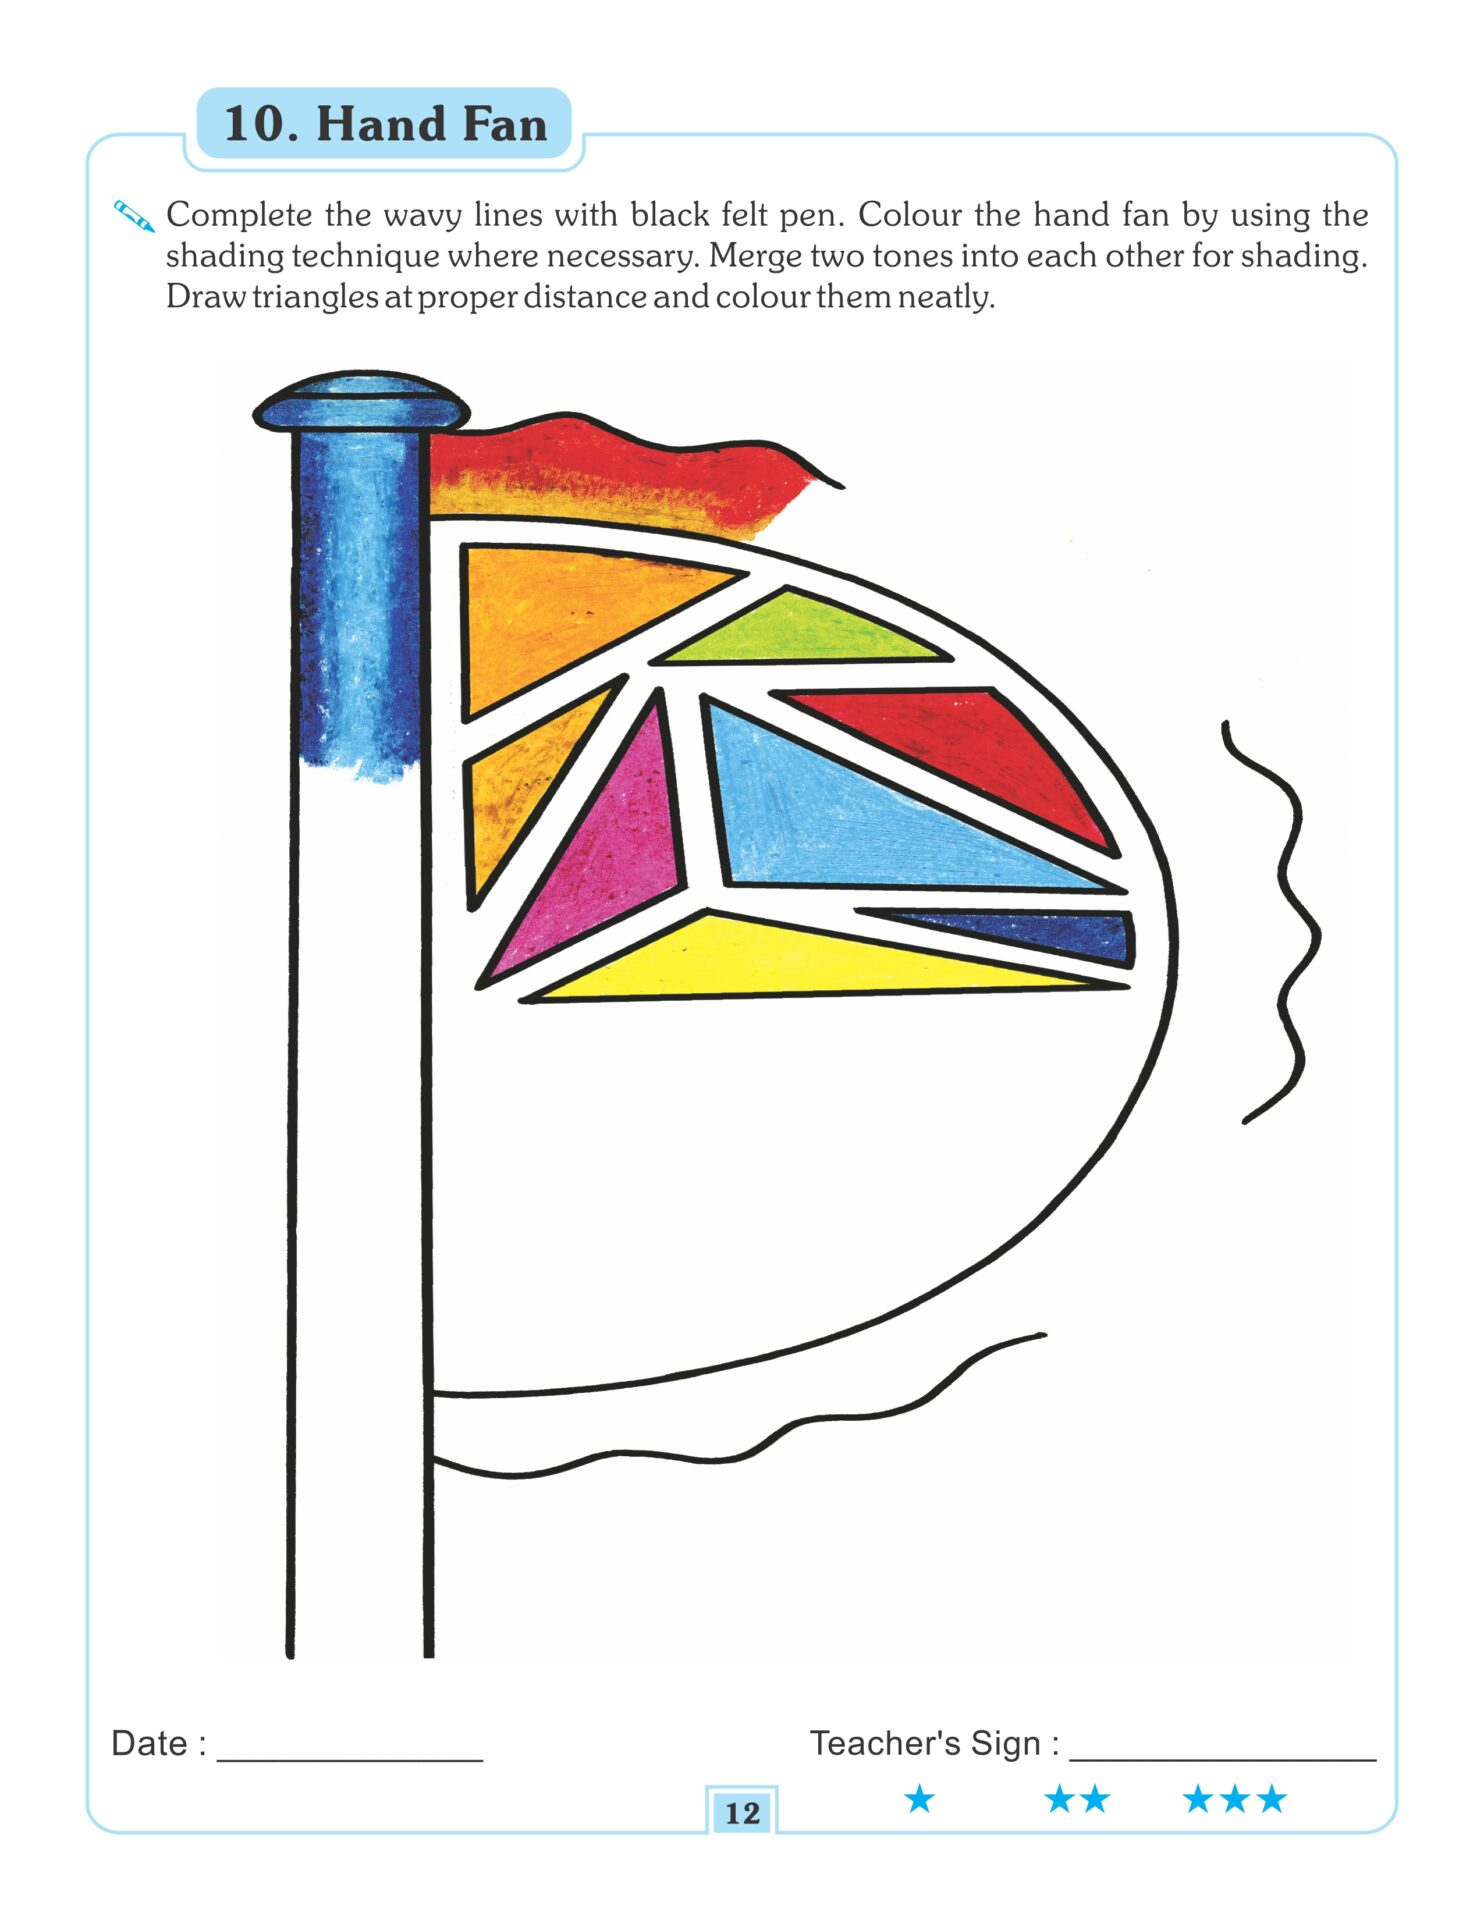 Nigam Drawing and Colouring Book 3 6